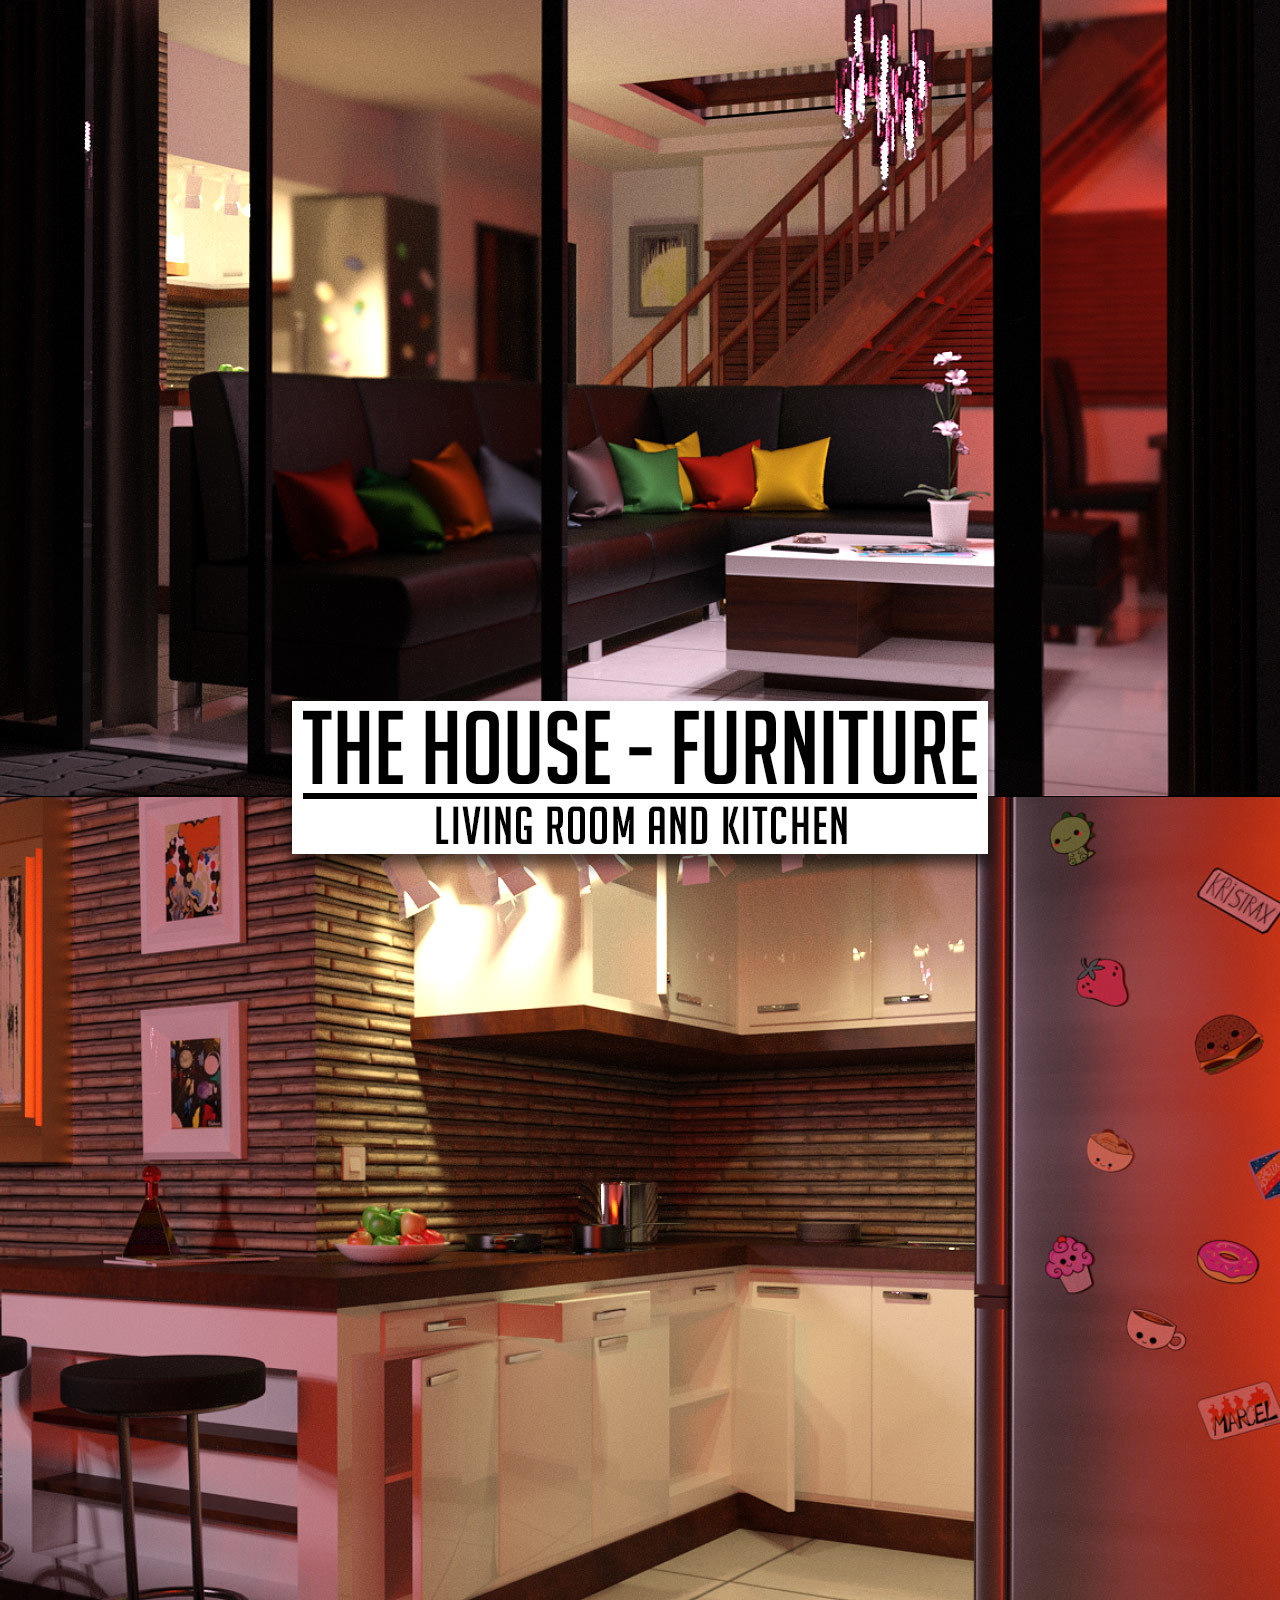 The House Furniture -Living Room and Kitchen